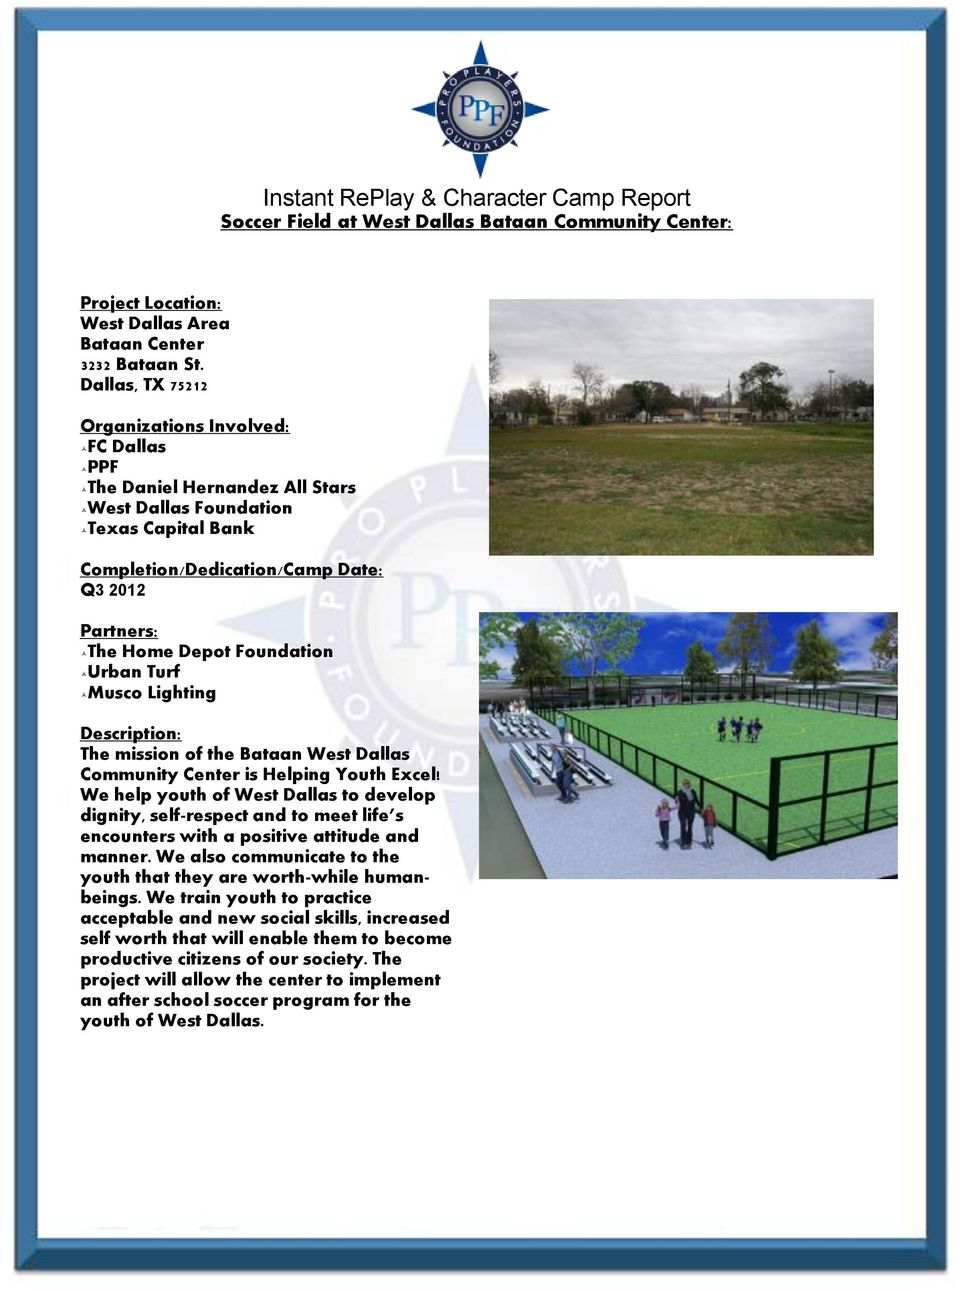 Foundation Urban Turf Musco Lighting Description: The mission of the Bataan West Dallas Community Center is Helping Youth Excel!